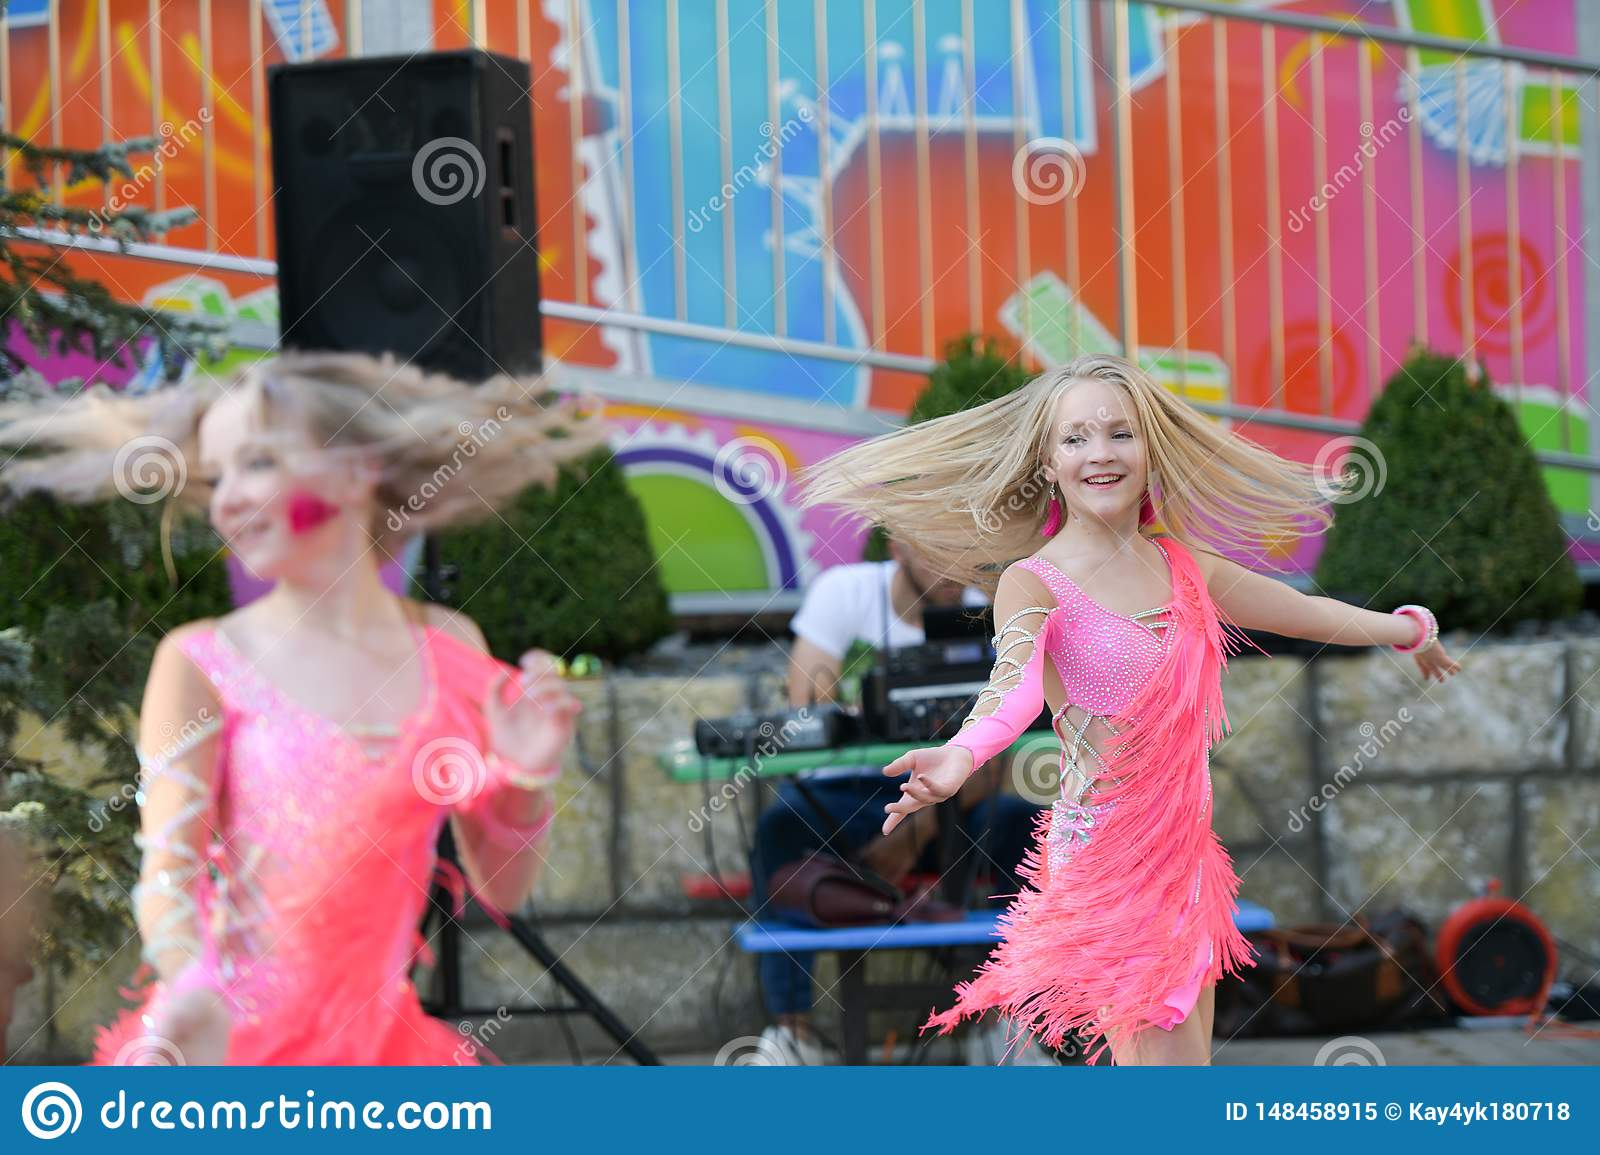 Two young girls dancing together. dancing with pleasure. open-air dance performance